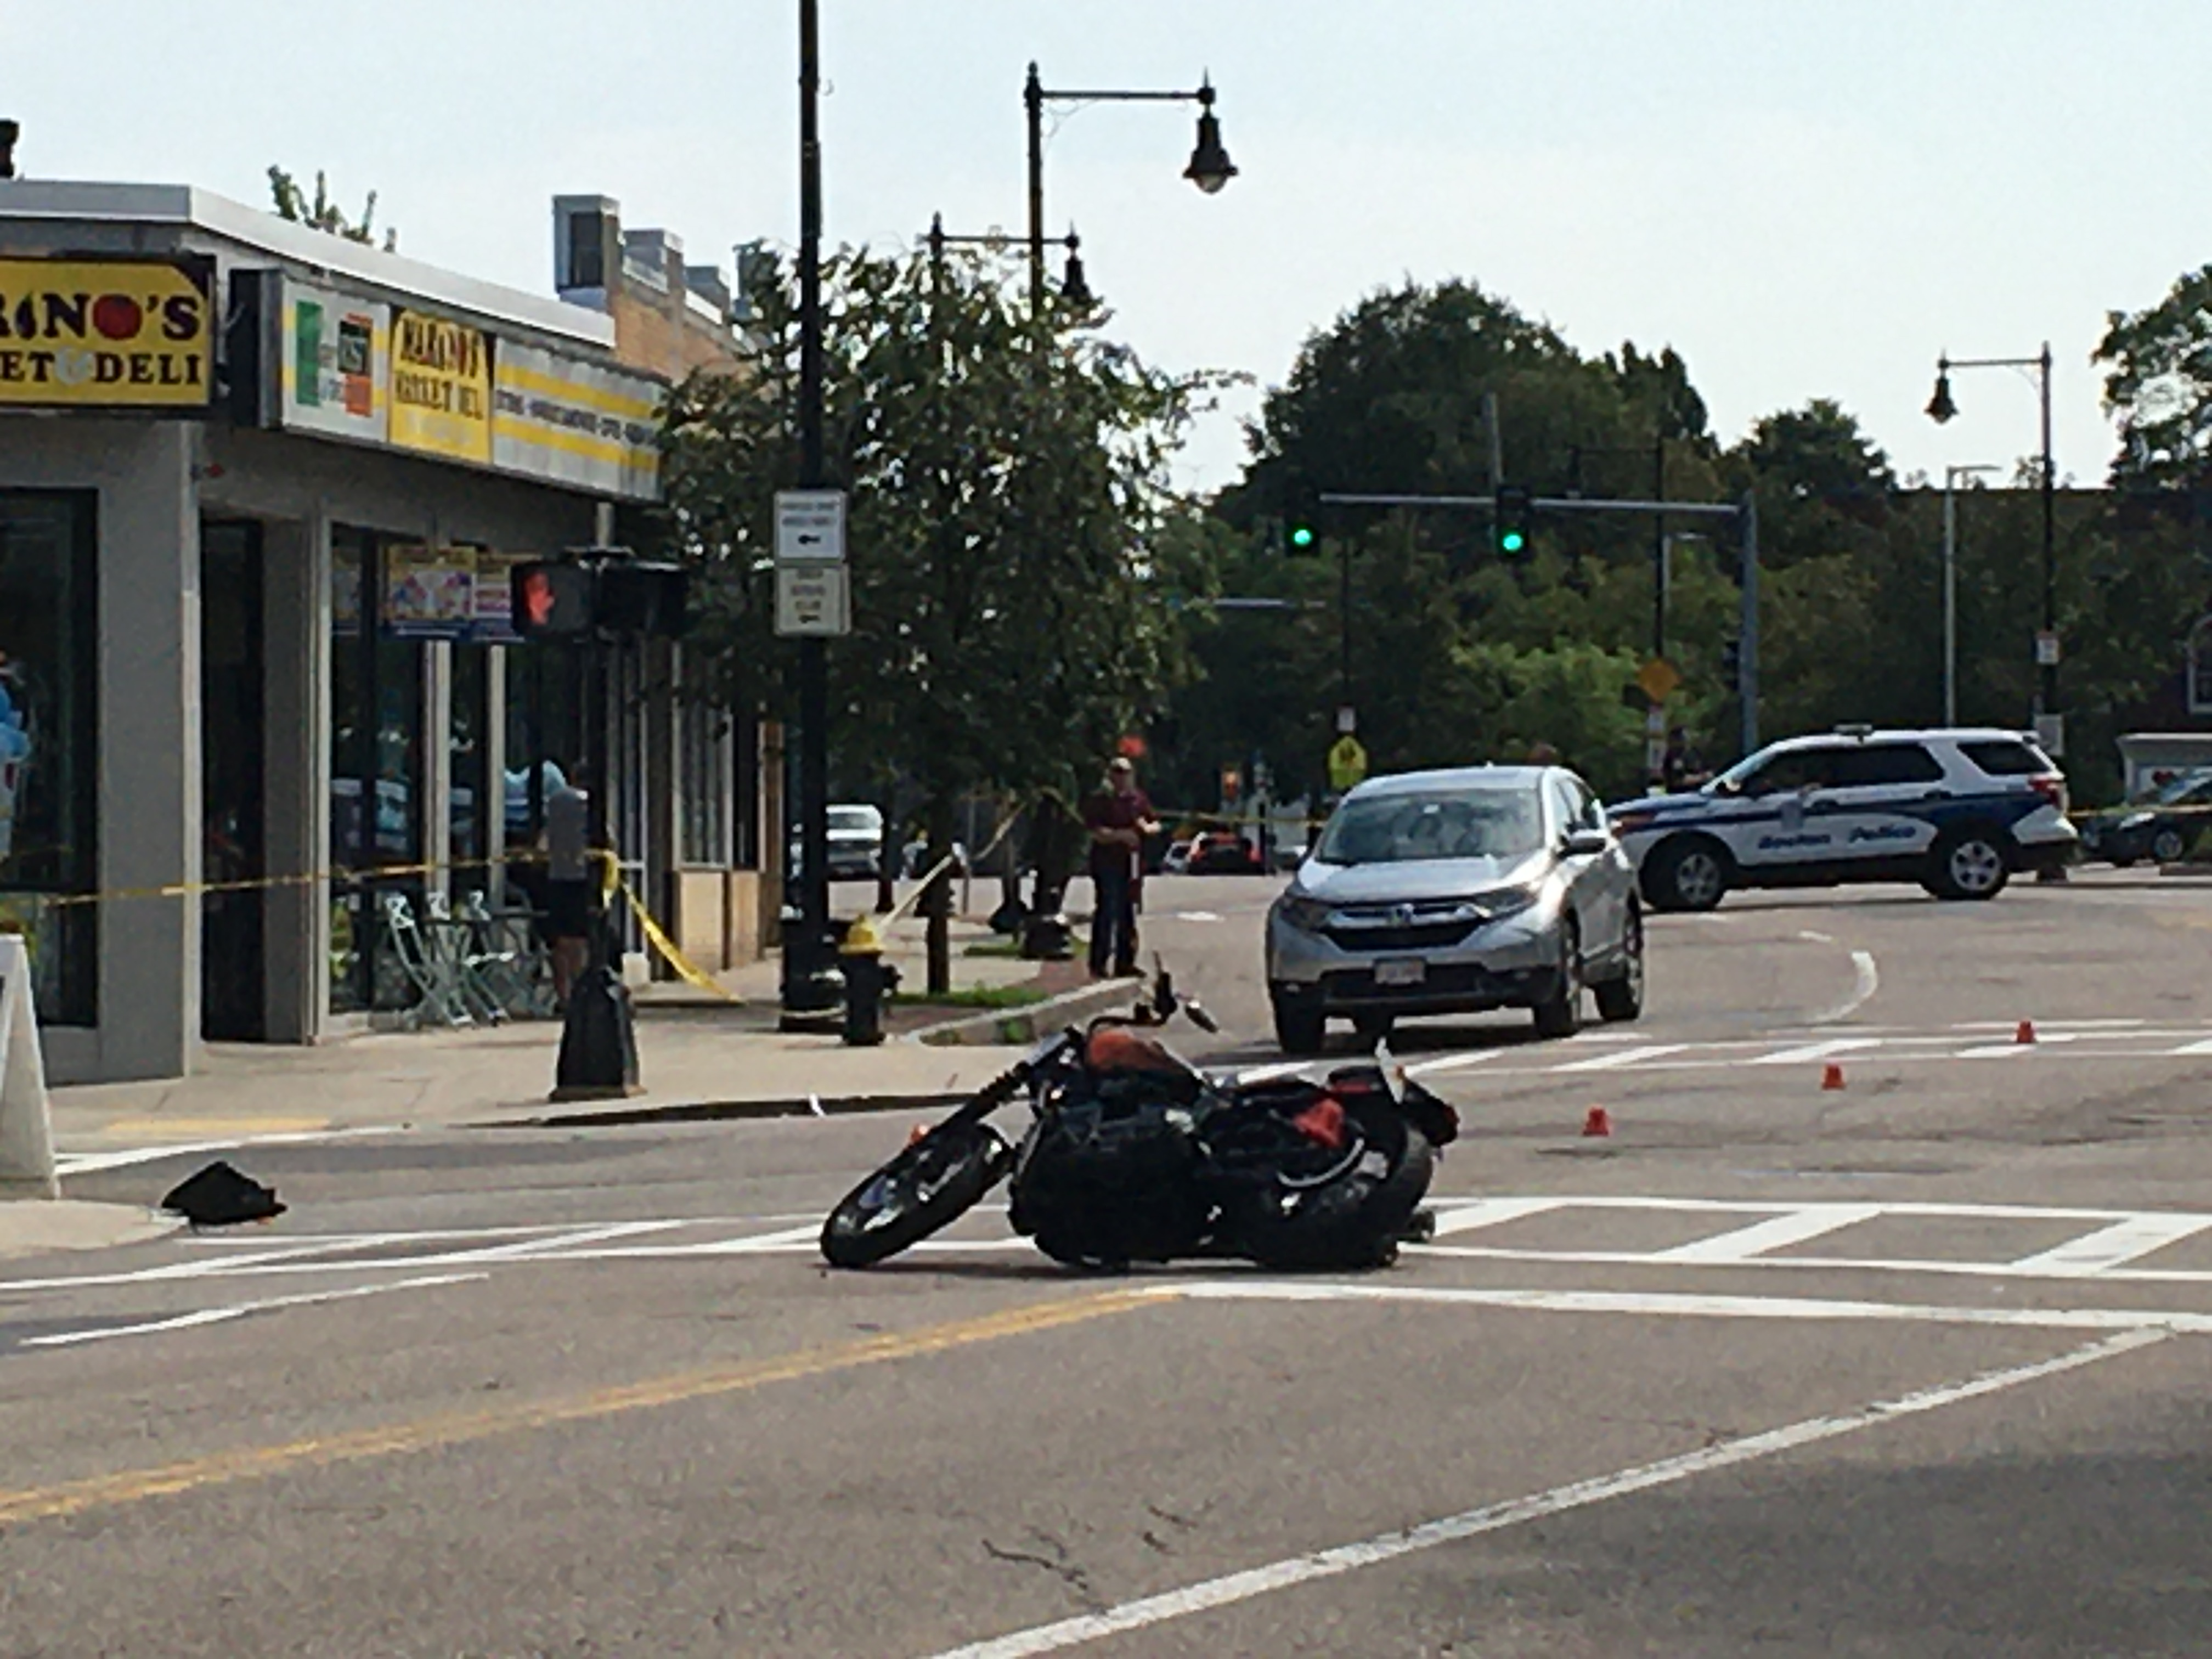 Motorcycle down on Centre Street